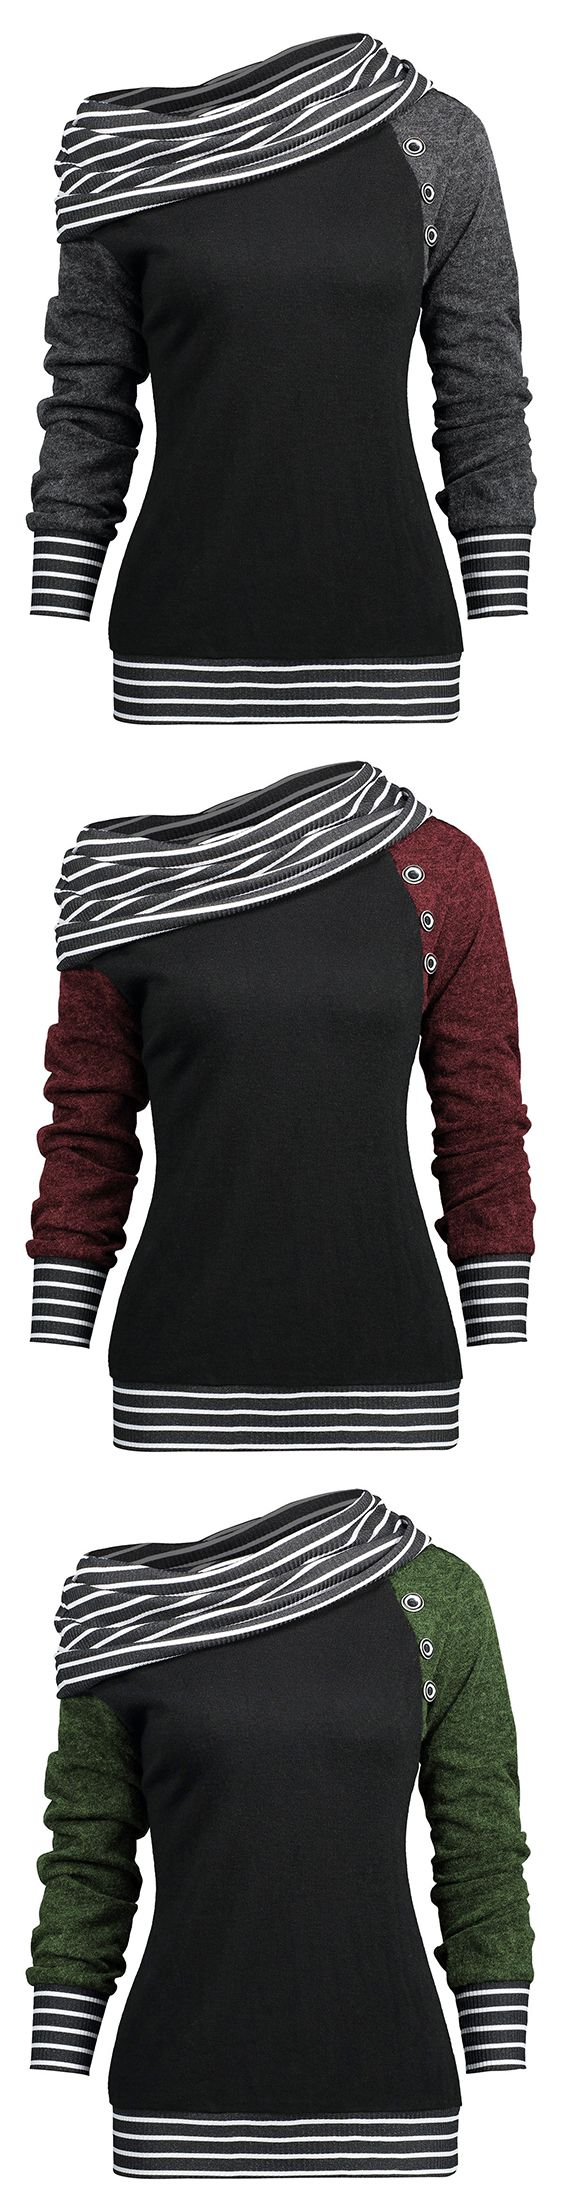 Buy the latest Tops for women at cheap prices,best tops at Dresslily.com.#plussize#tshirt